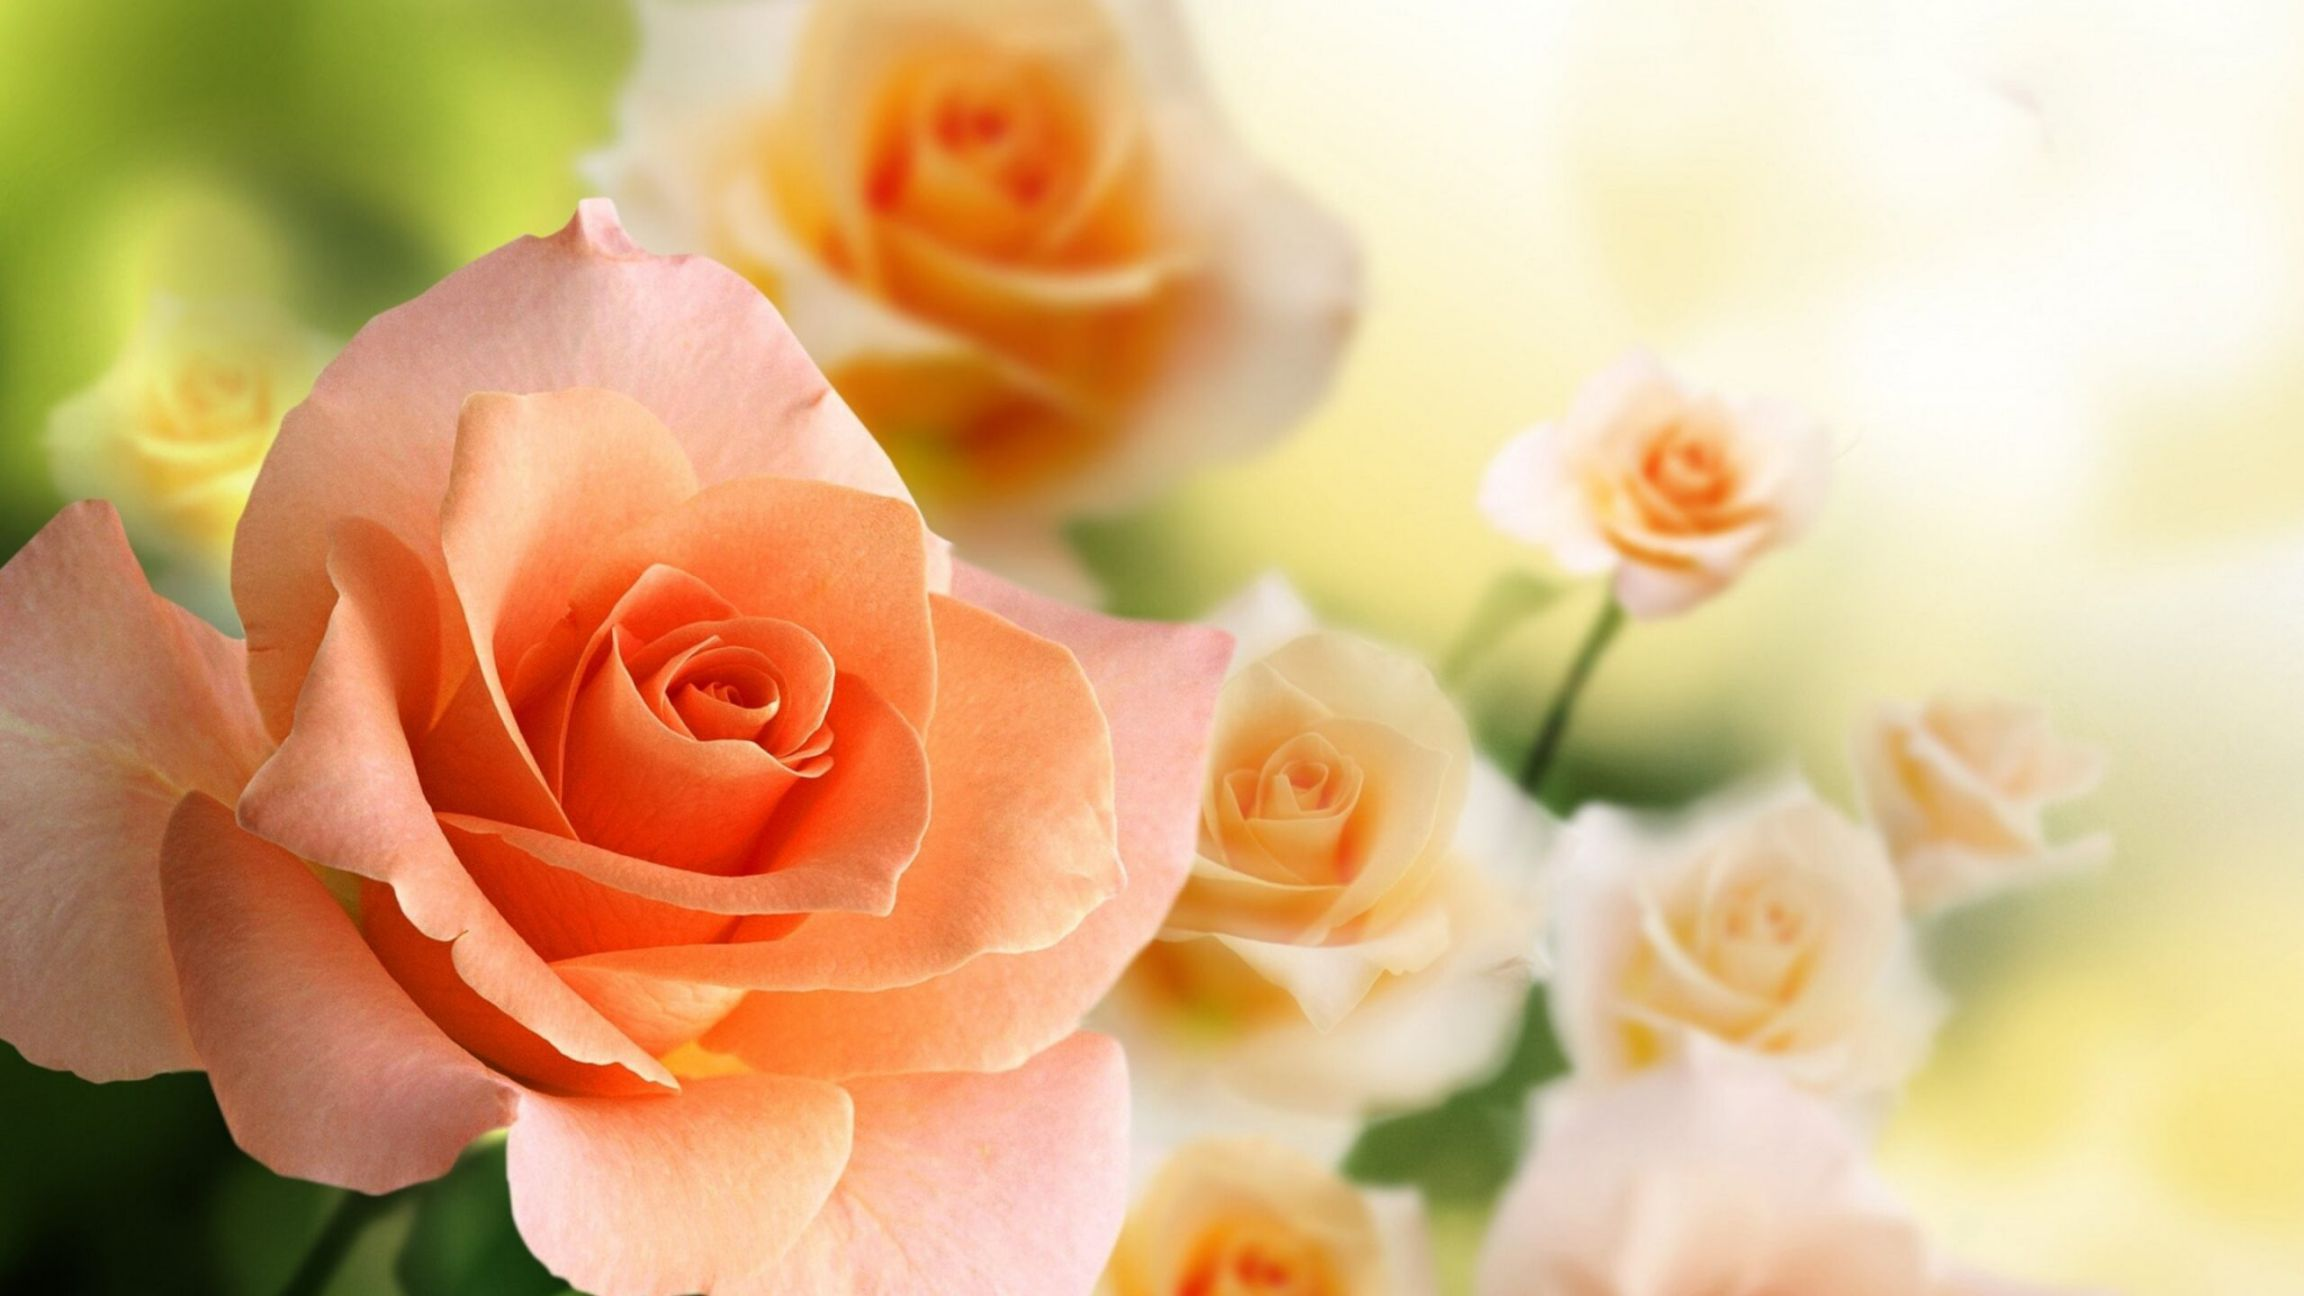 flower rose wallpaper